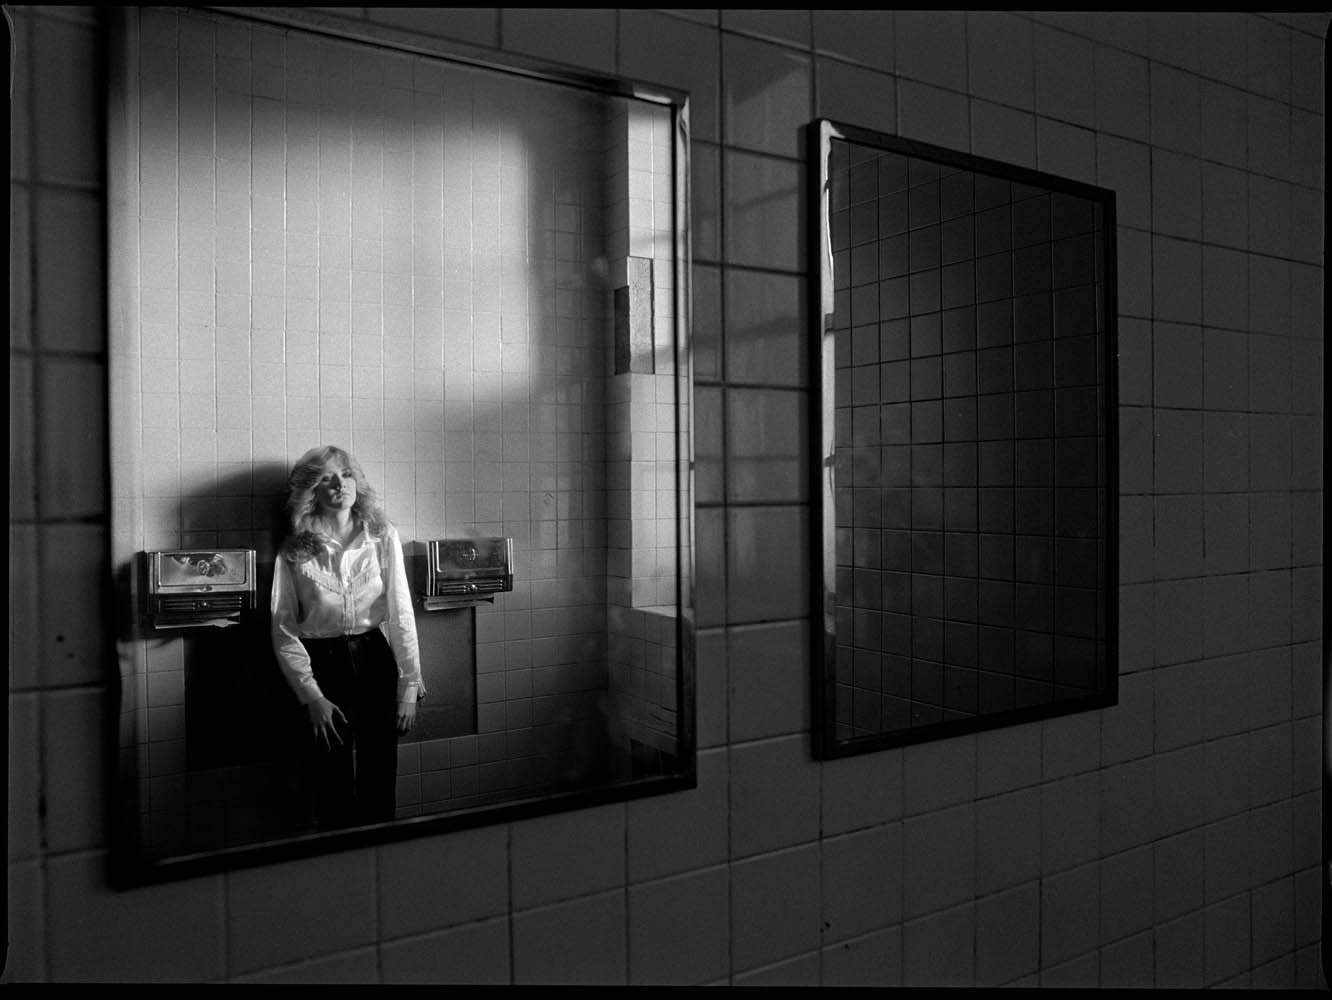 Girl in the Mirror, 1993